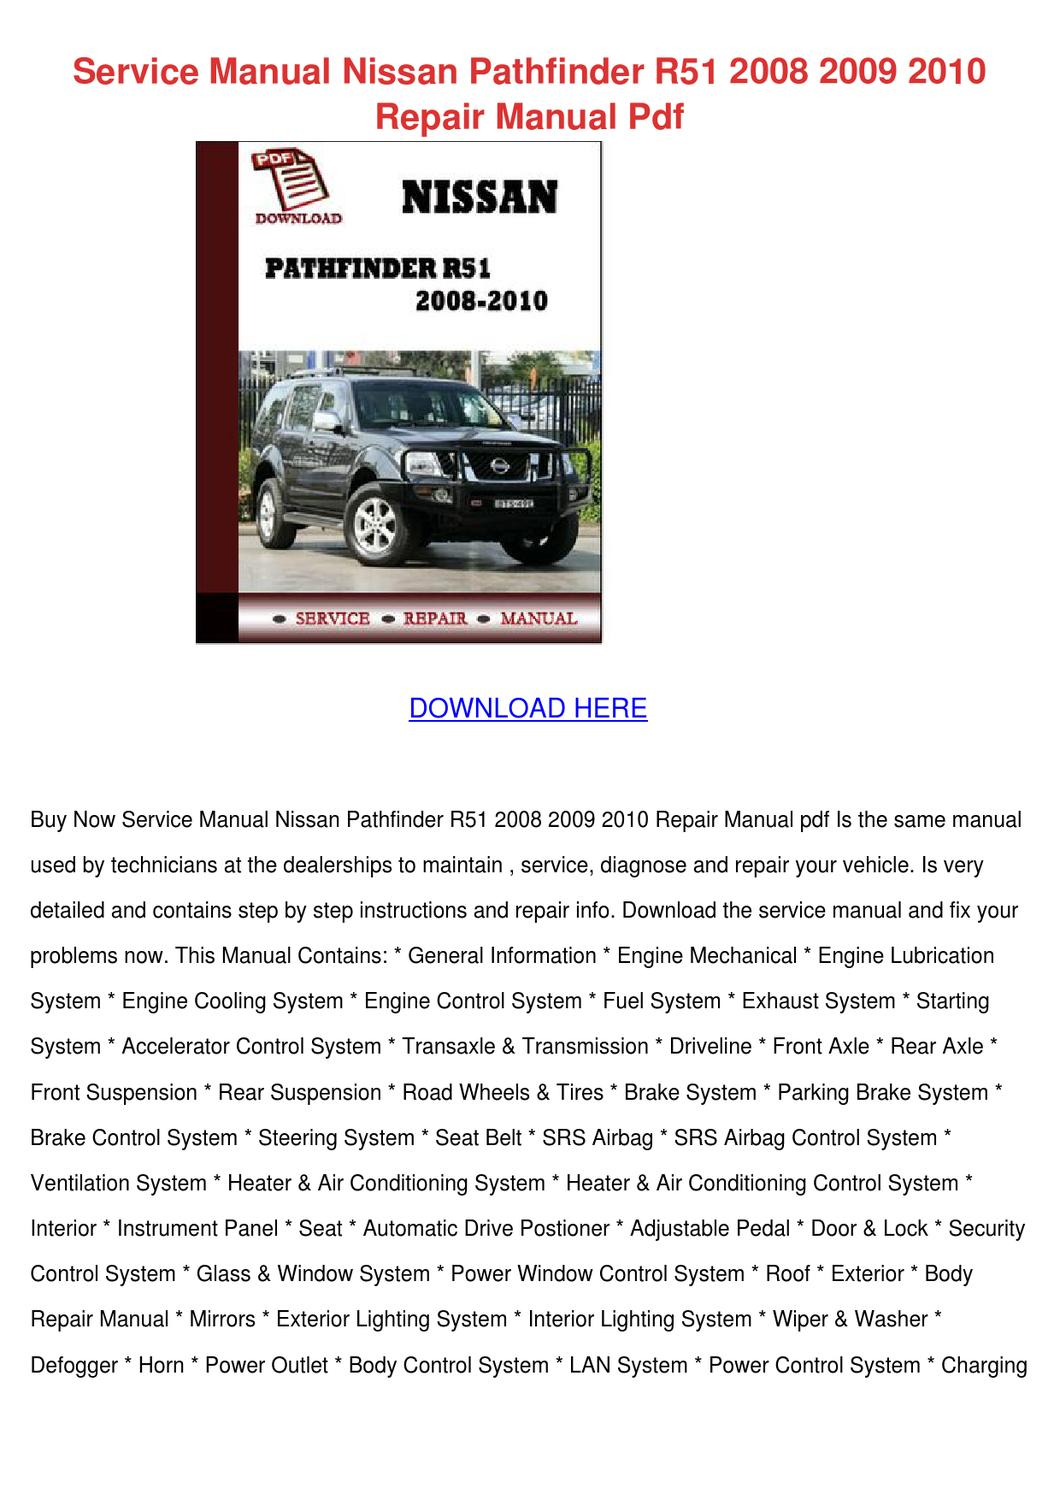 service manual nissan pathfinder r51 2008 200 by jessgriffis issuu rh issuu com nissan pathfinder 2008 service manual download 2006 Nissan Pathfinder Manual